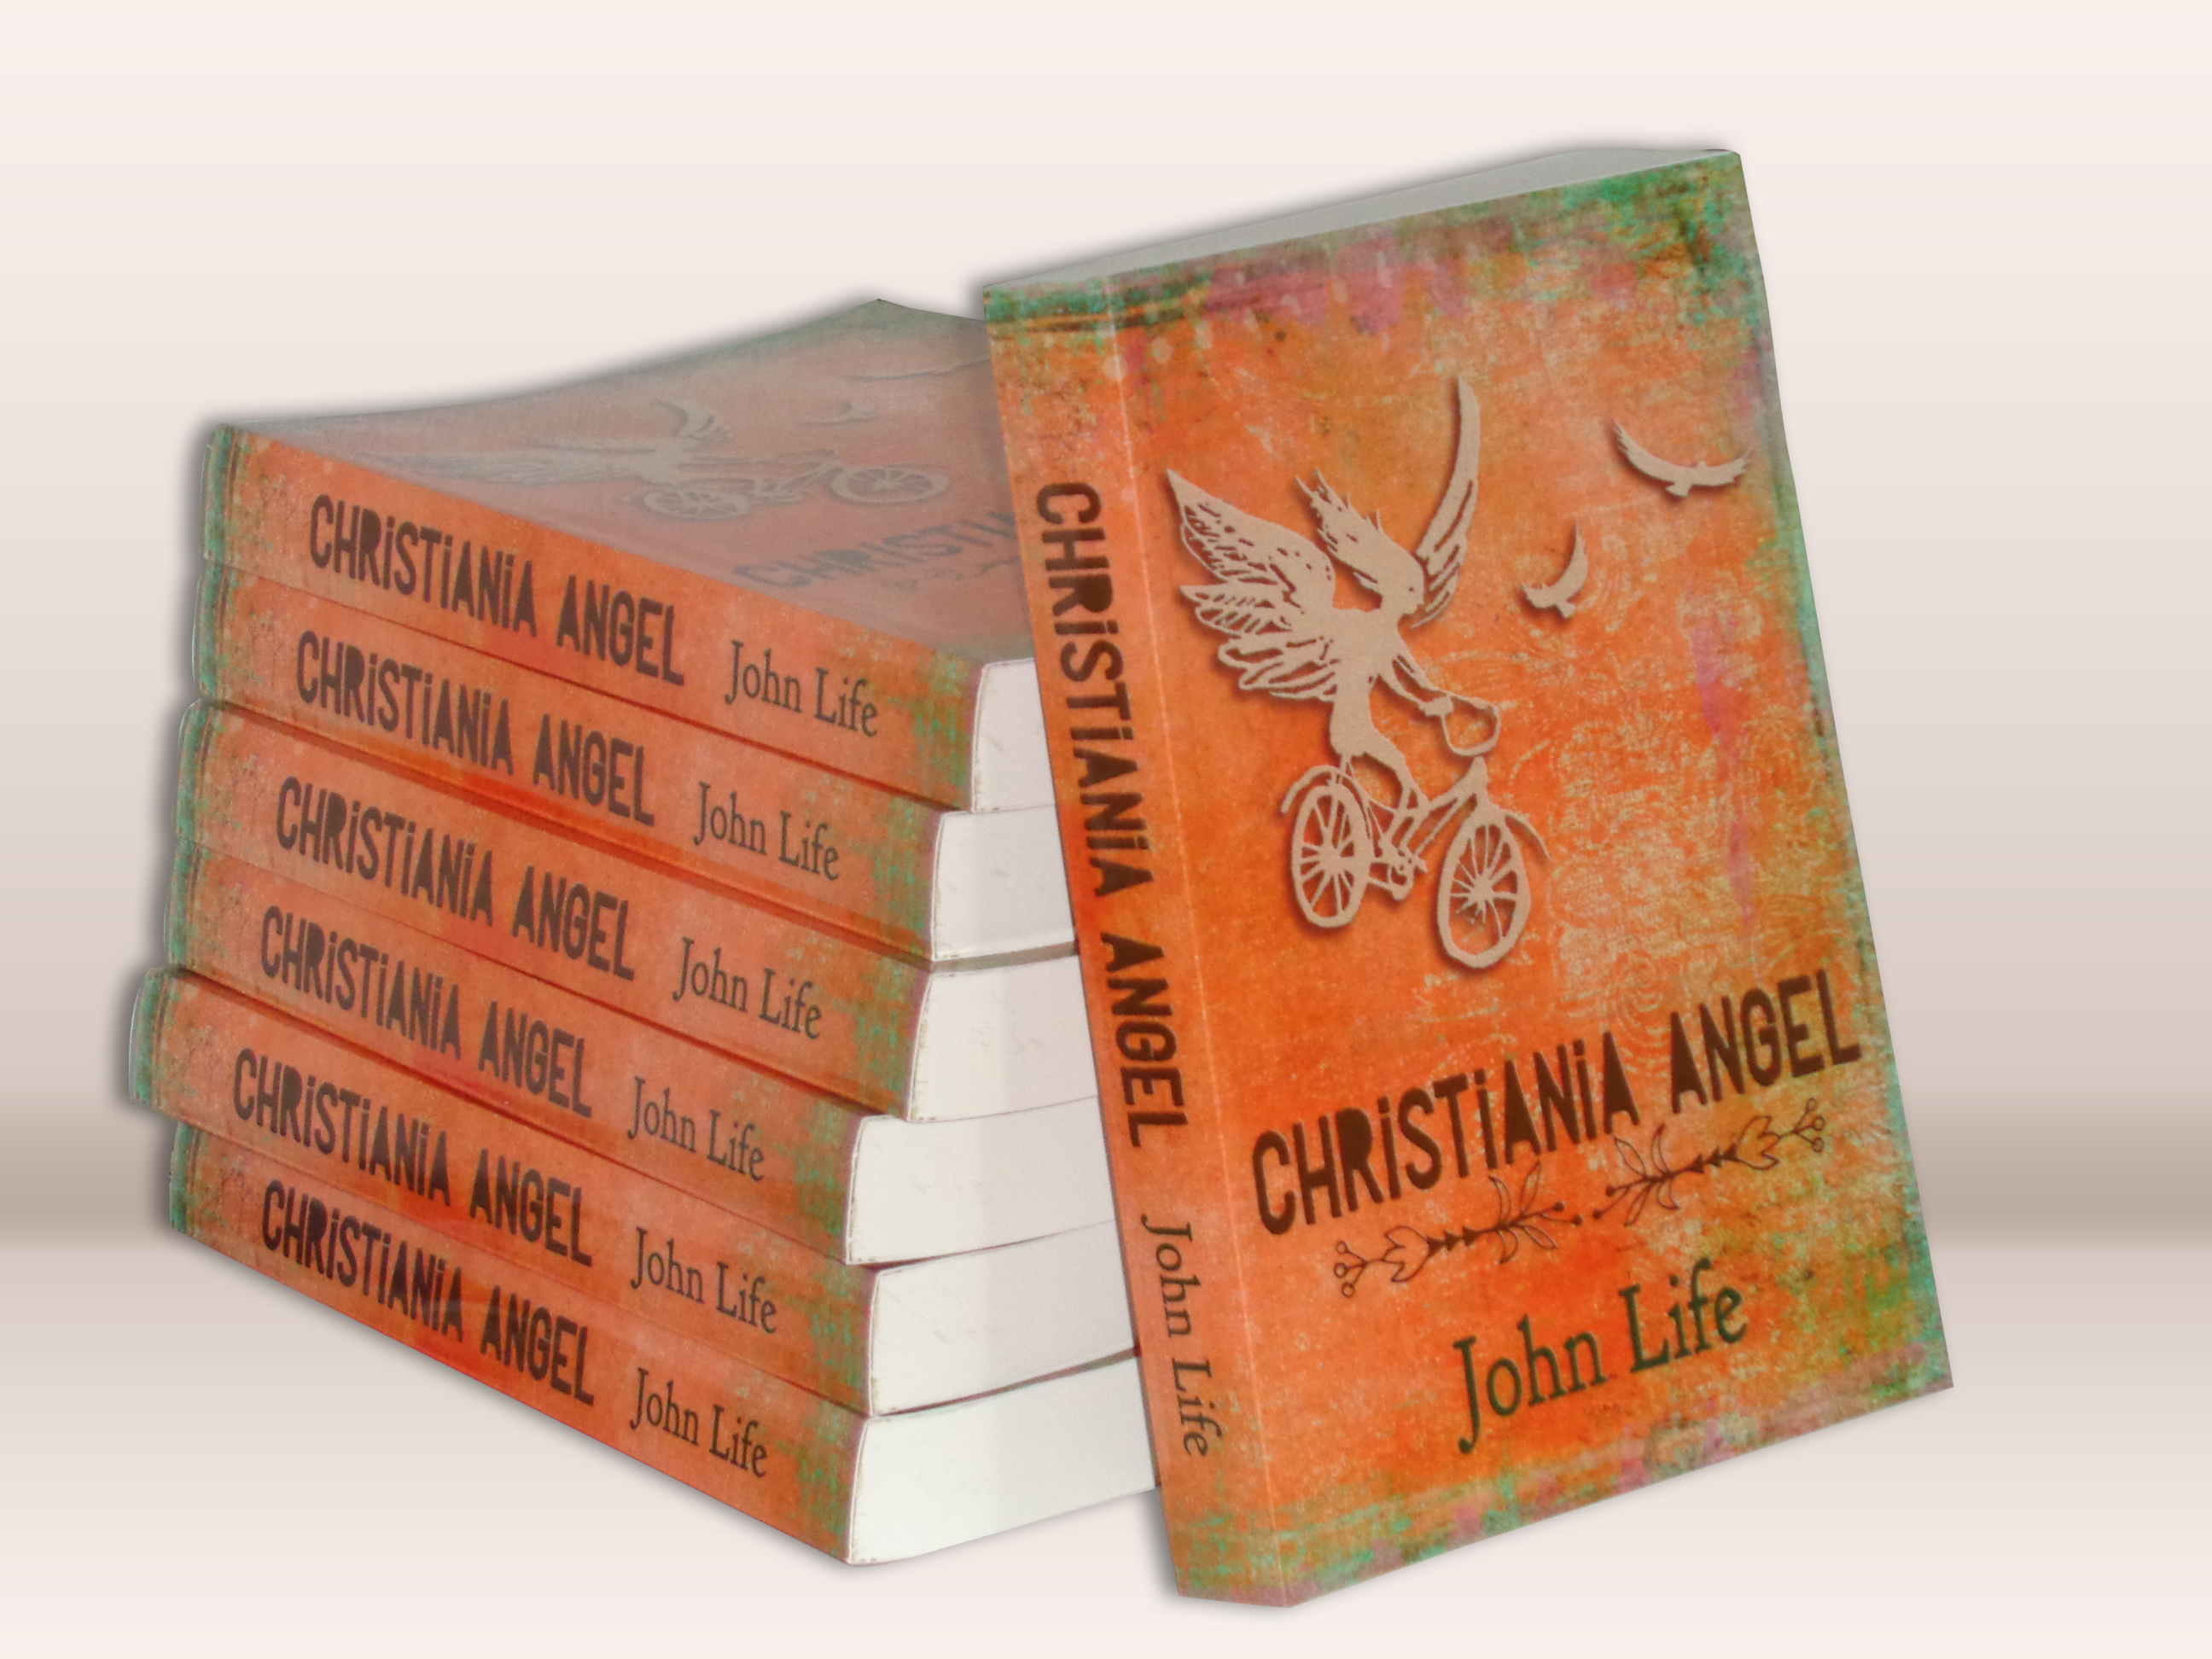 Christiania Angel book cover design